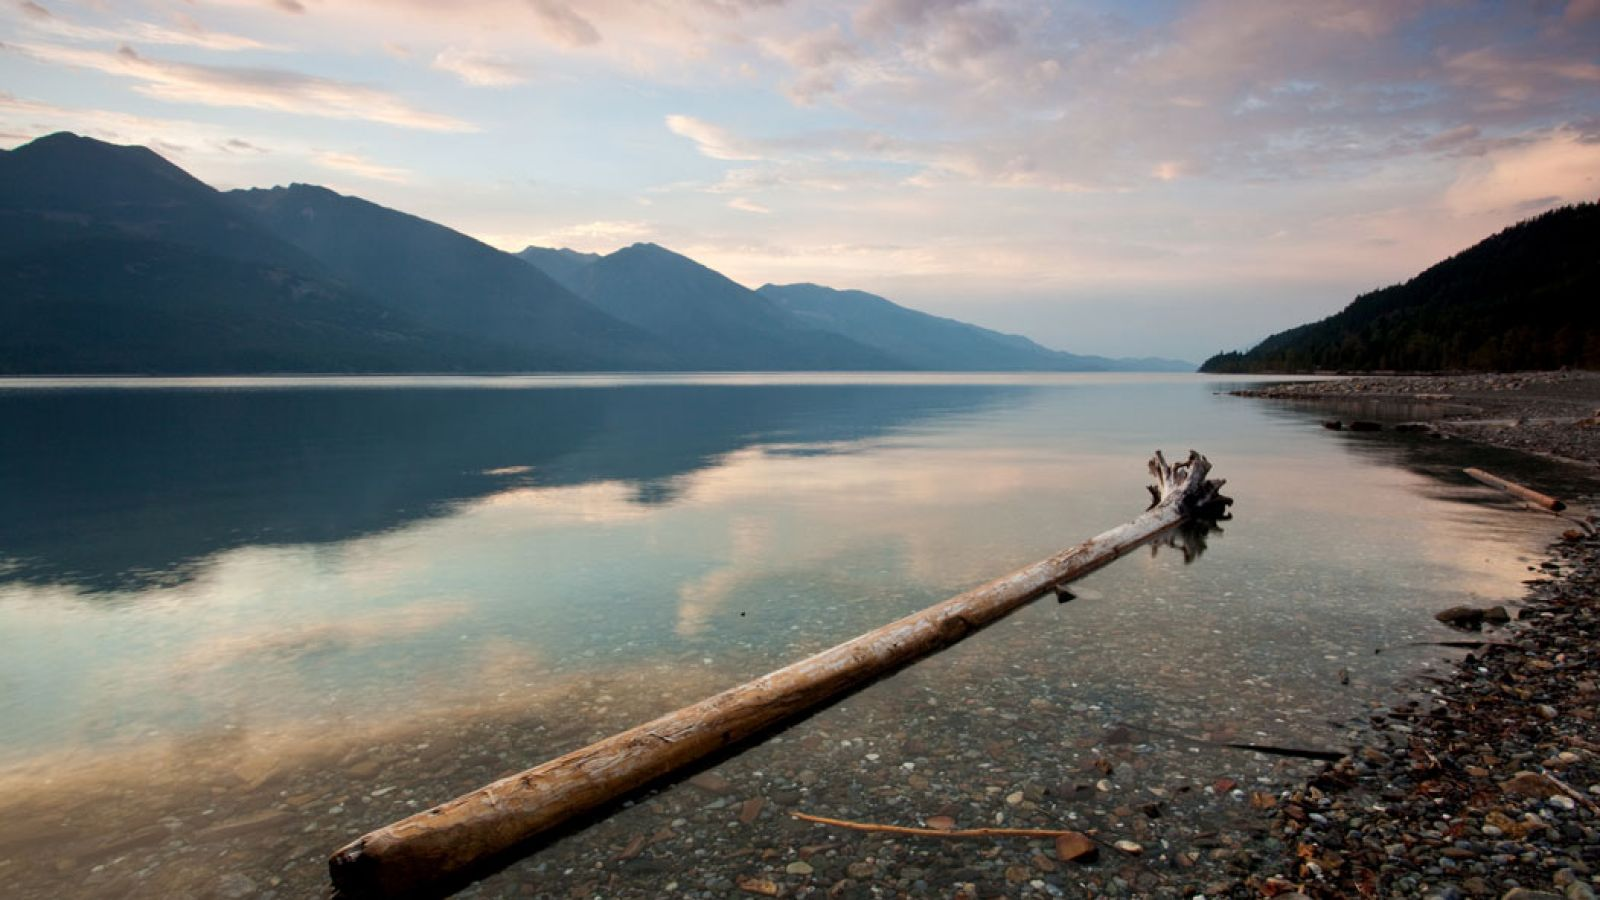 A sunset at Kootenay Lake.